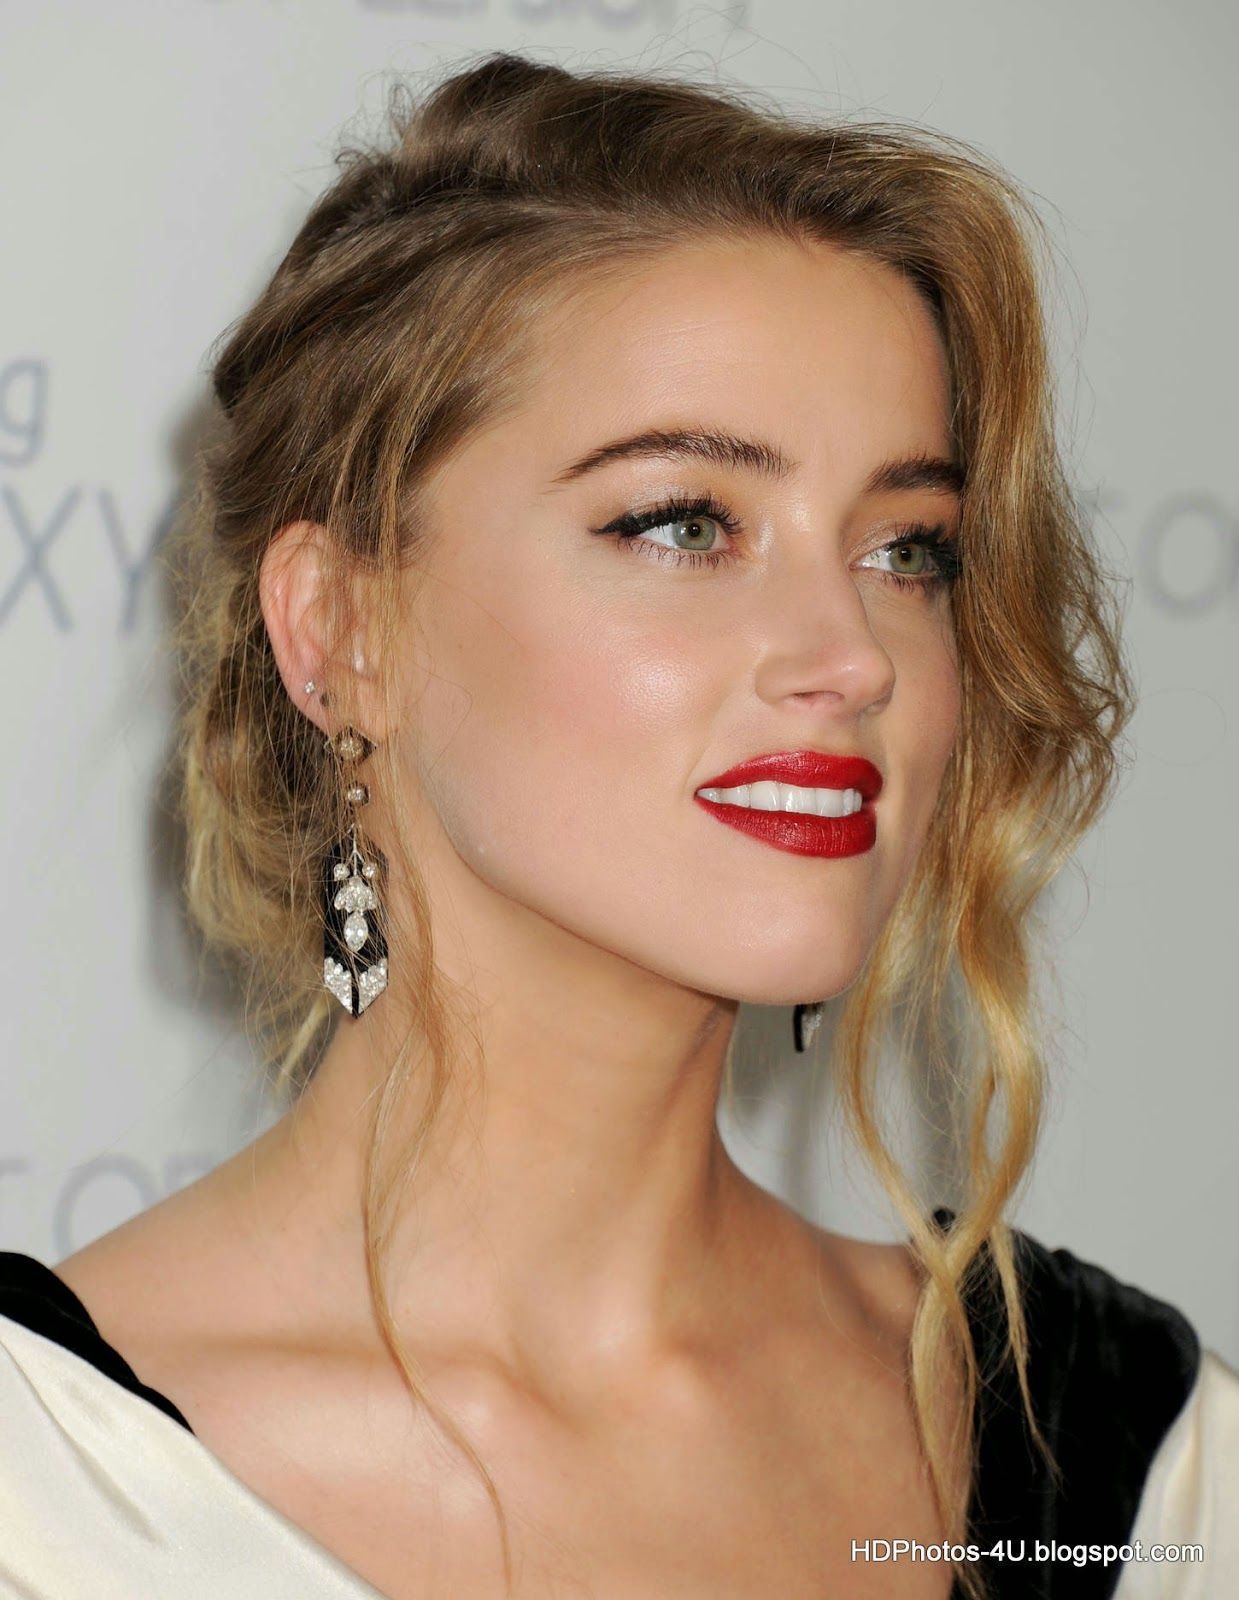 Johnny Depp Wife Amber Heard Full Hd Photo Wallpapers Amber Heard Hair Amber Heard Amber Heard Style